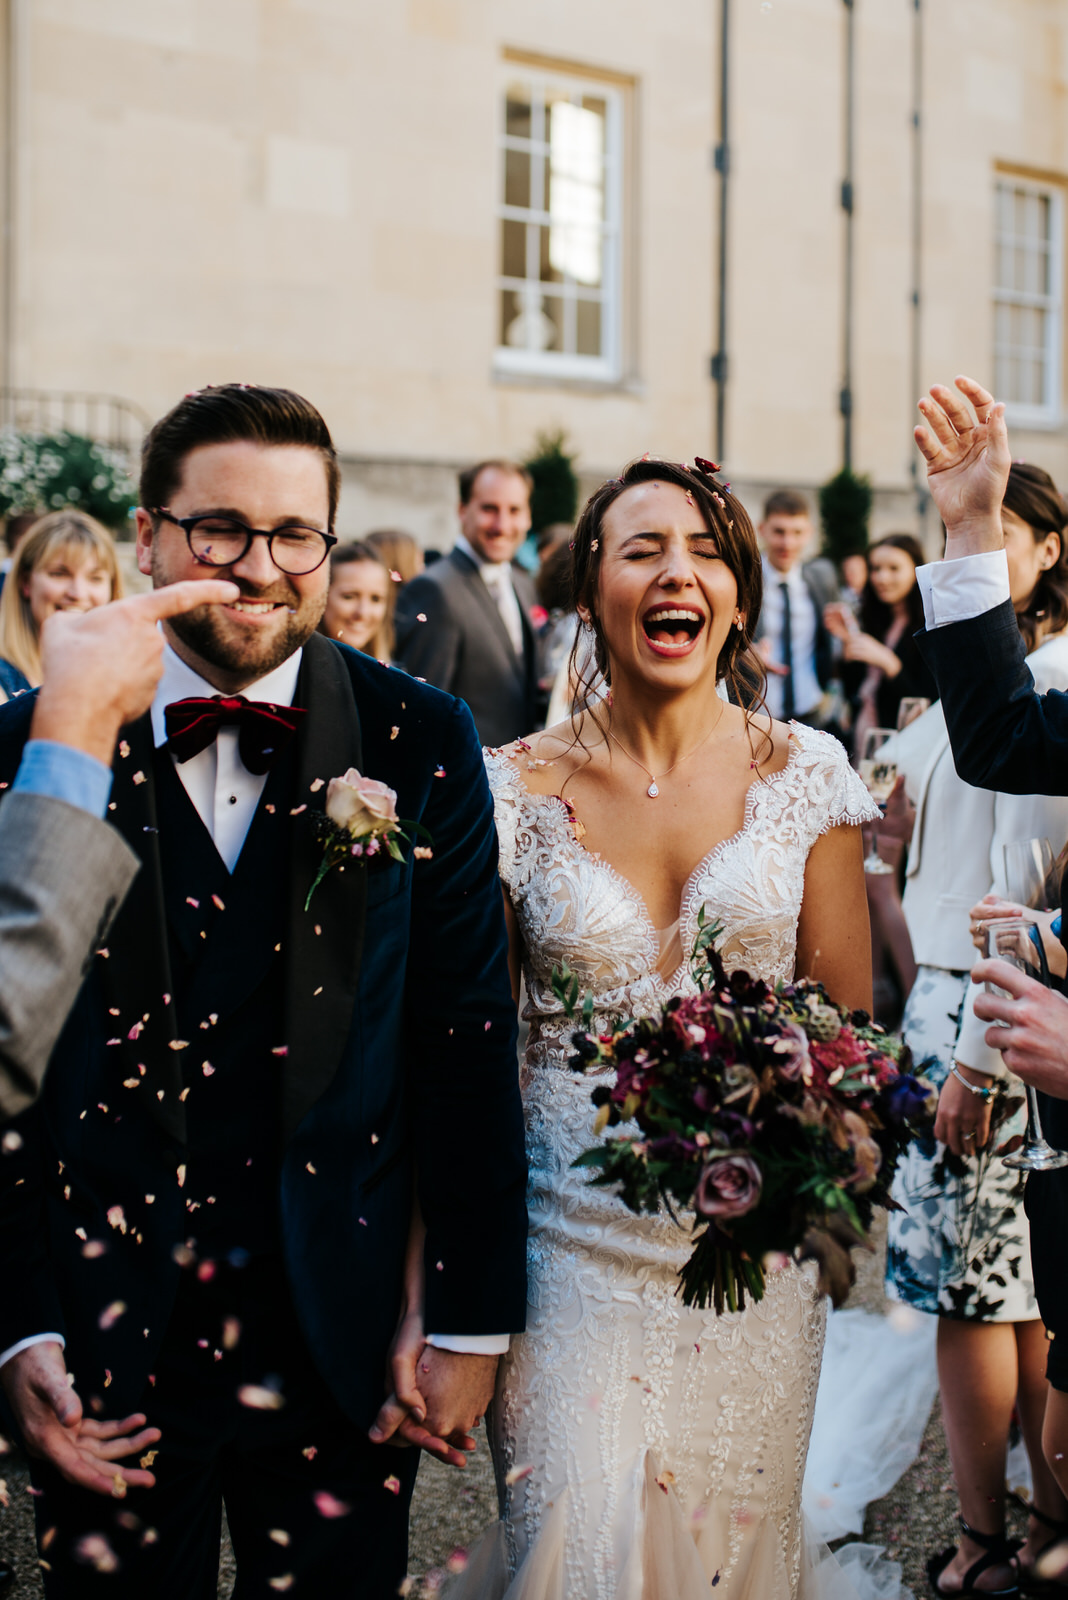 Bride and groom pull funny faces as confetti is thrown at them after wedding ceremony